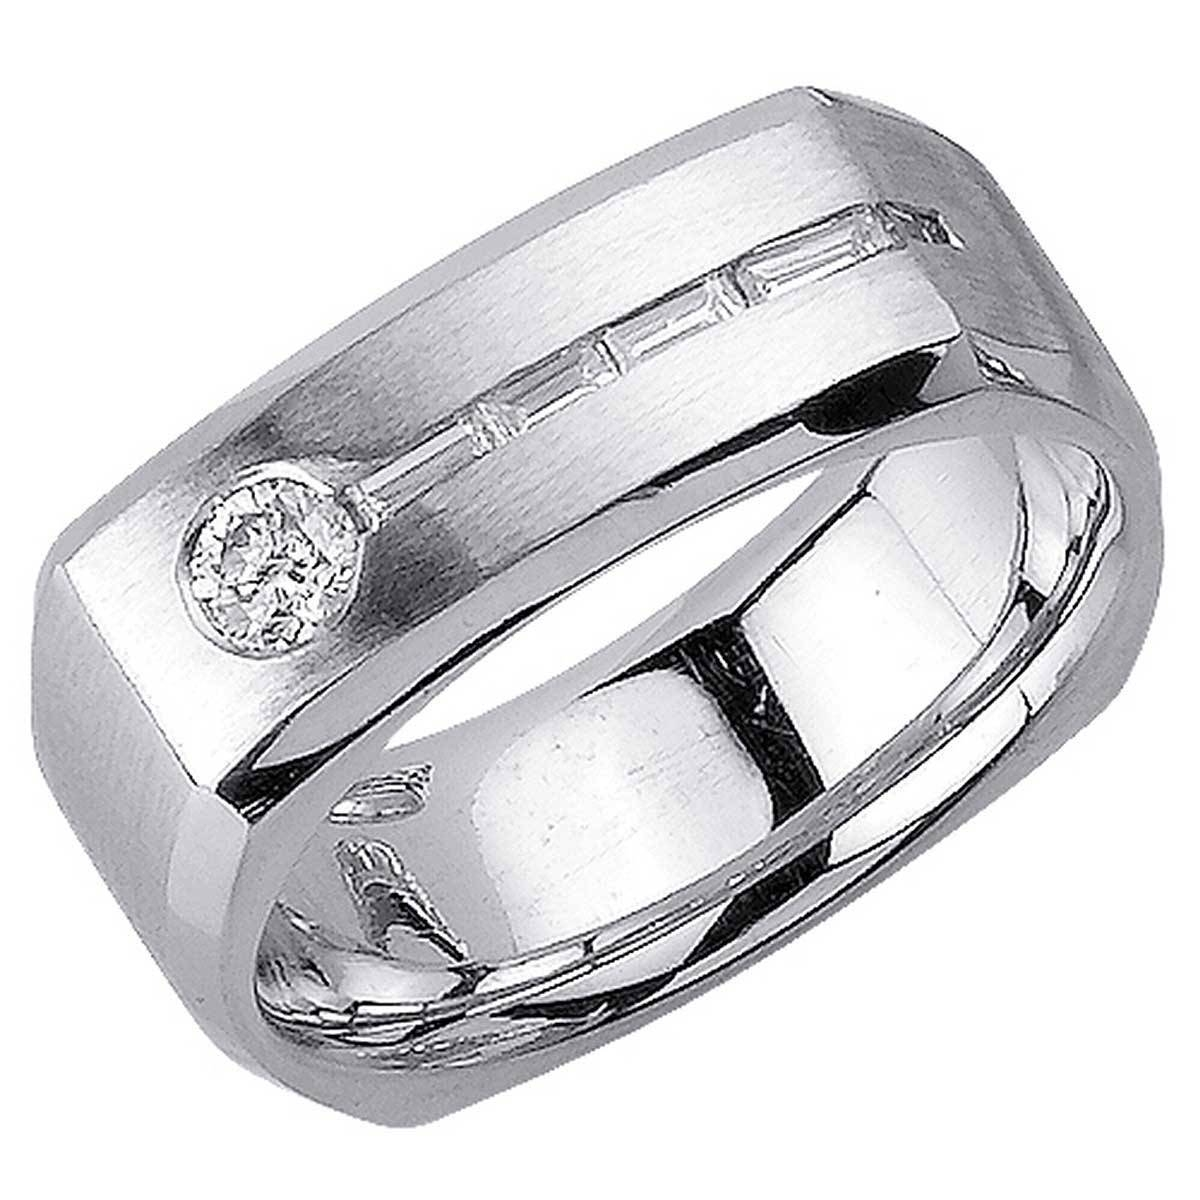 55Ct Tcw 14K White Gold Flat Unique Band 8Mm  3002492 – Shop At With Newest Mens Flat Wedding Bands (View 2 of 15)